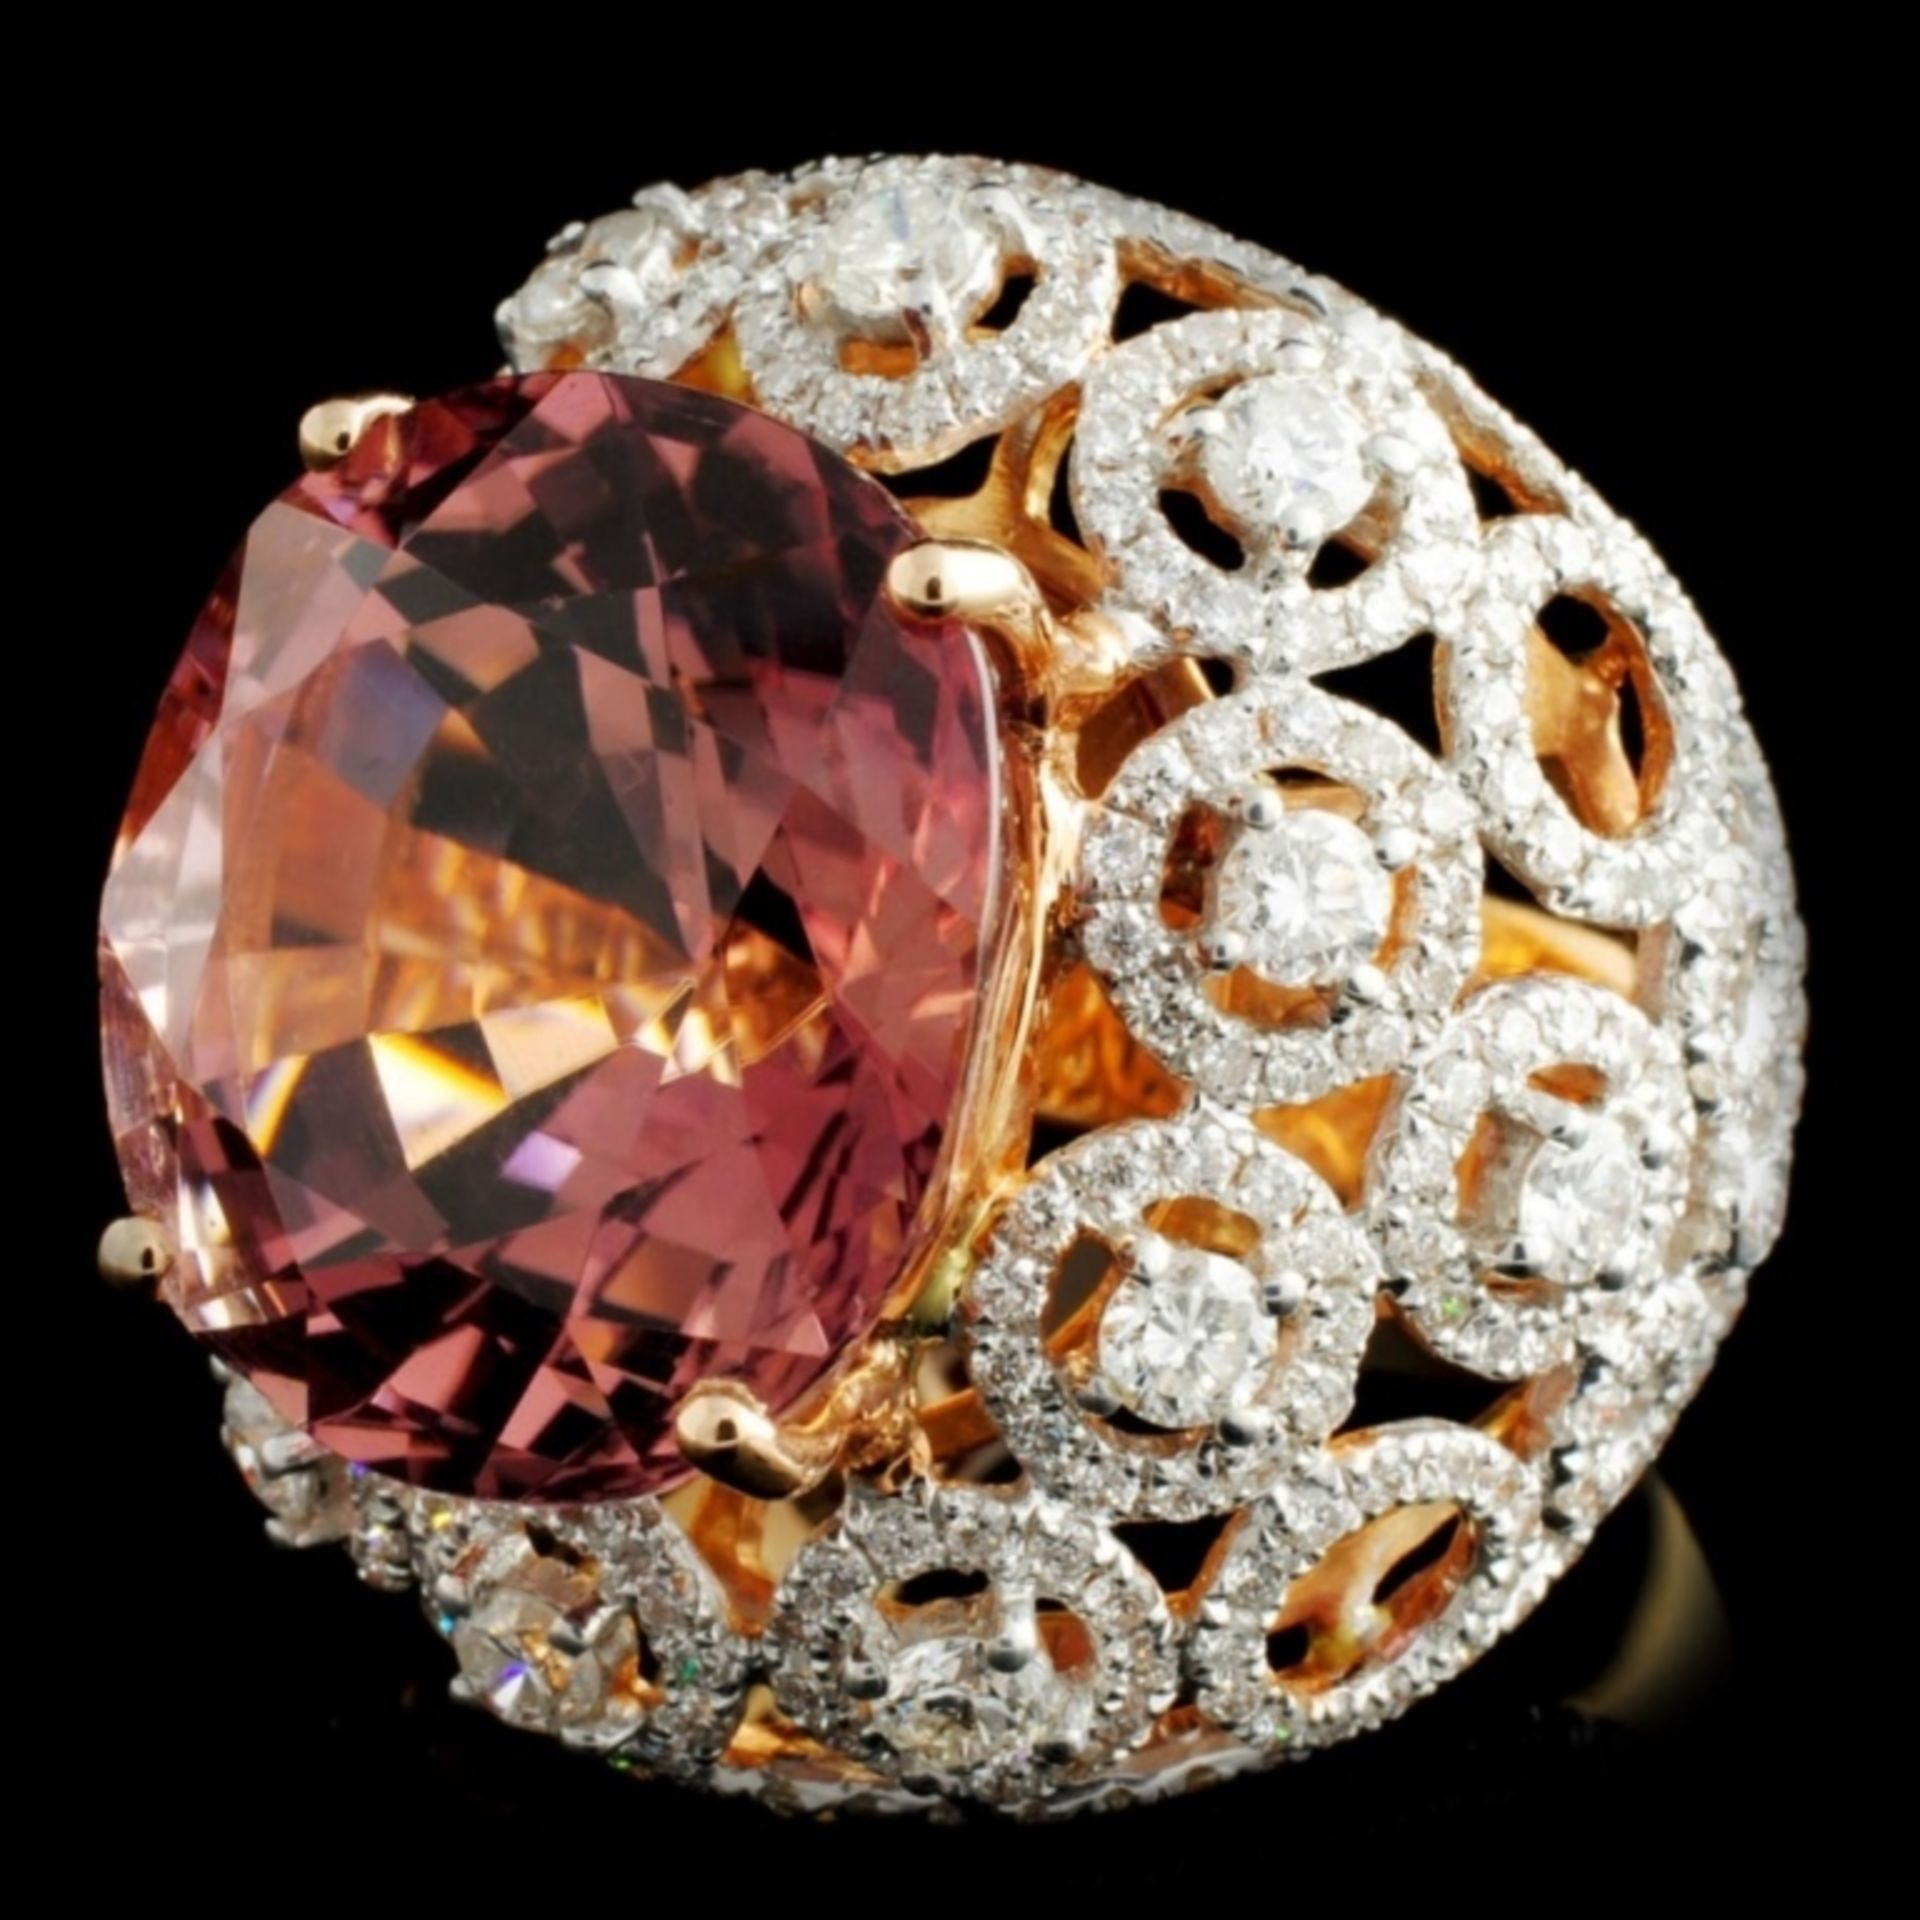 18K Gold 17.17ct Tourmaline & 2.55ctw Diamond Ring - Image 2 of 4